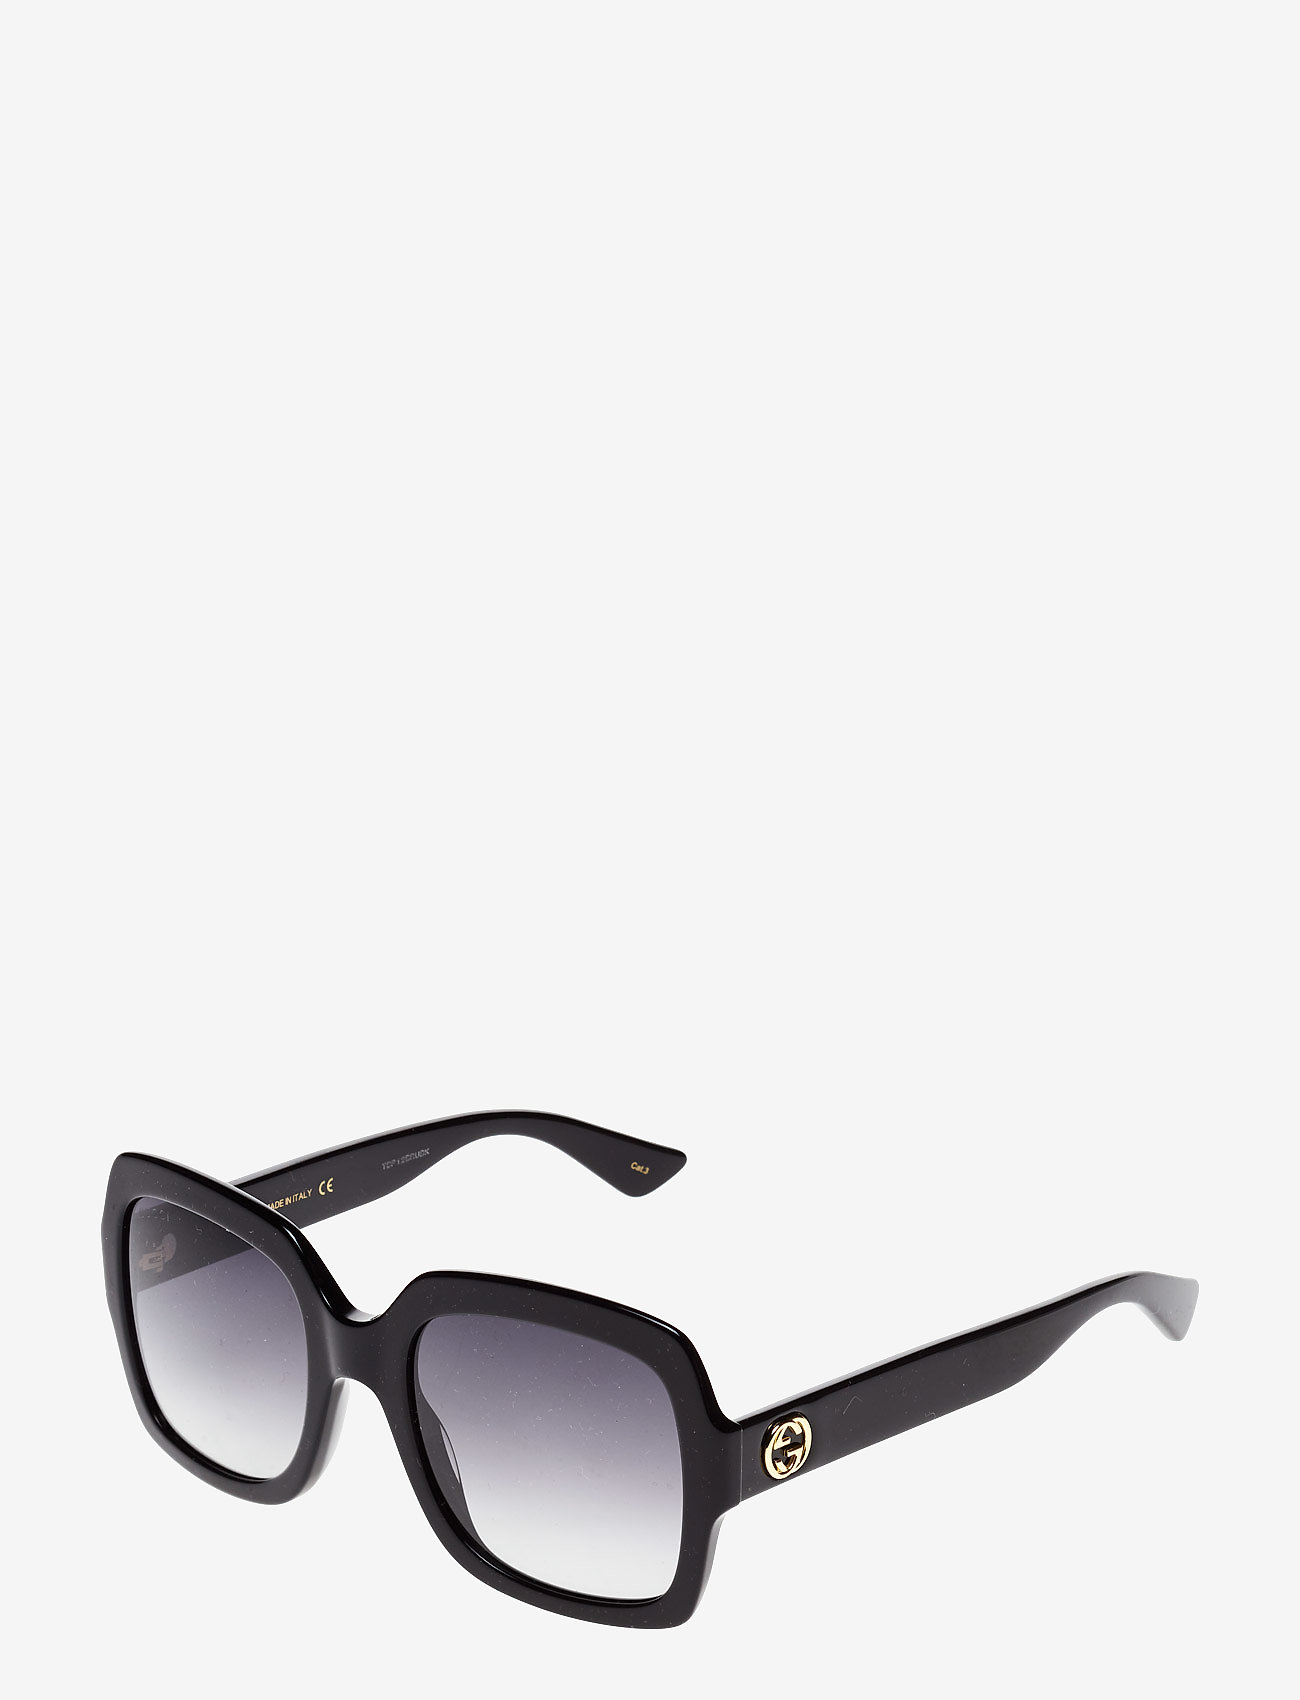 Gucci Sunglasses - GG0036S - black-black-grey - 1